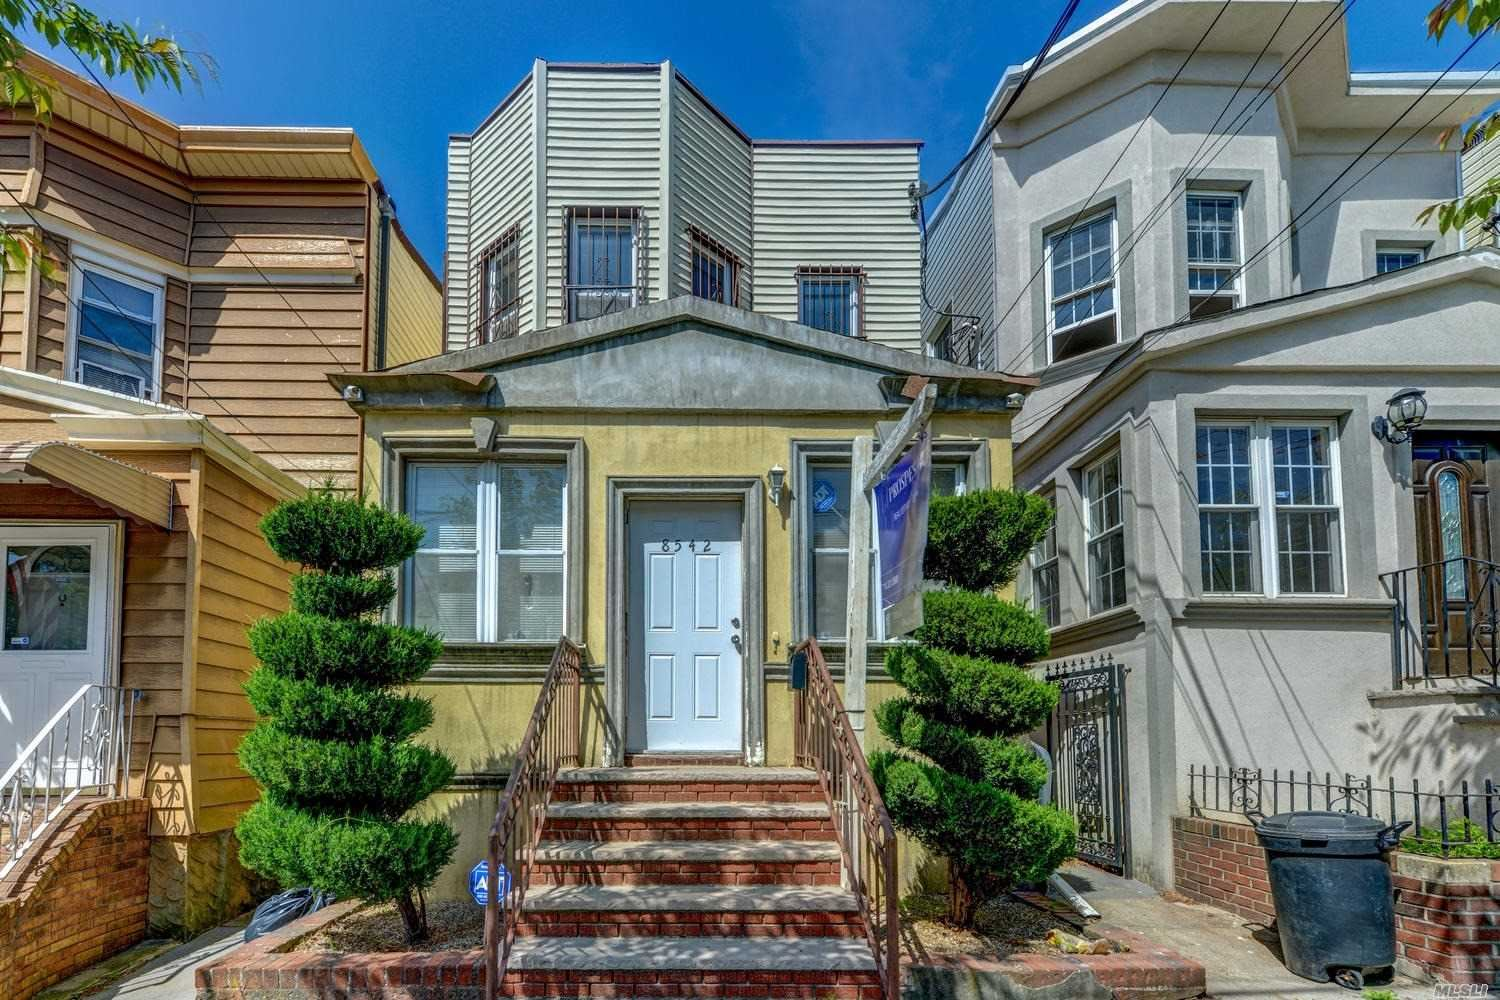 85-42 76th St, Woodhaven, NY 11421 - MLS#: 3211305